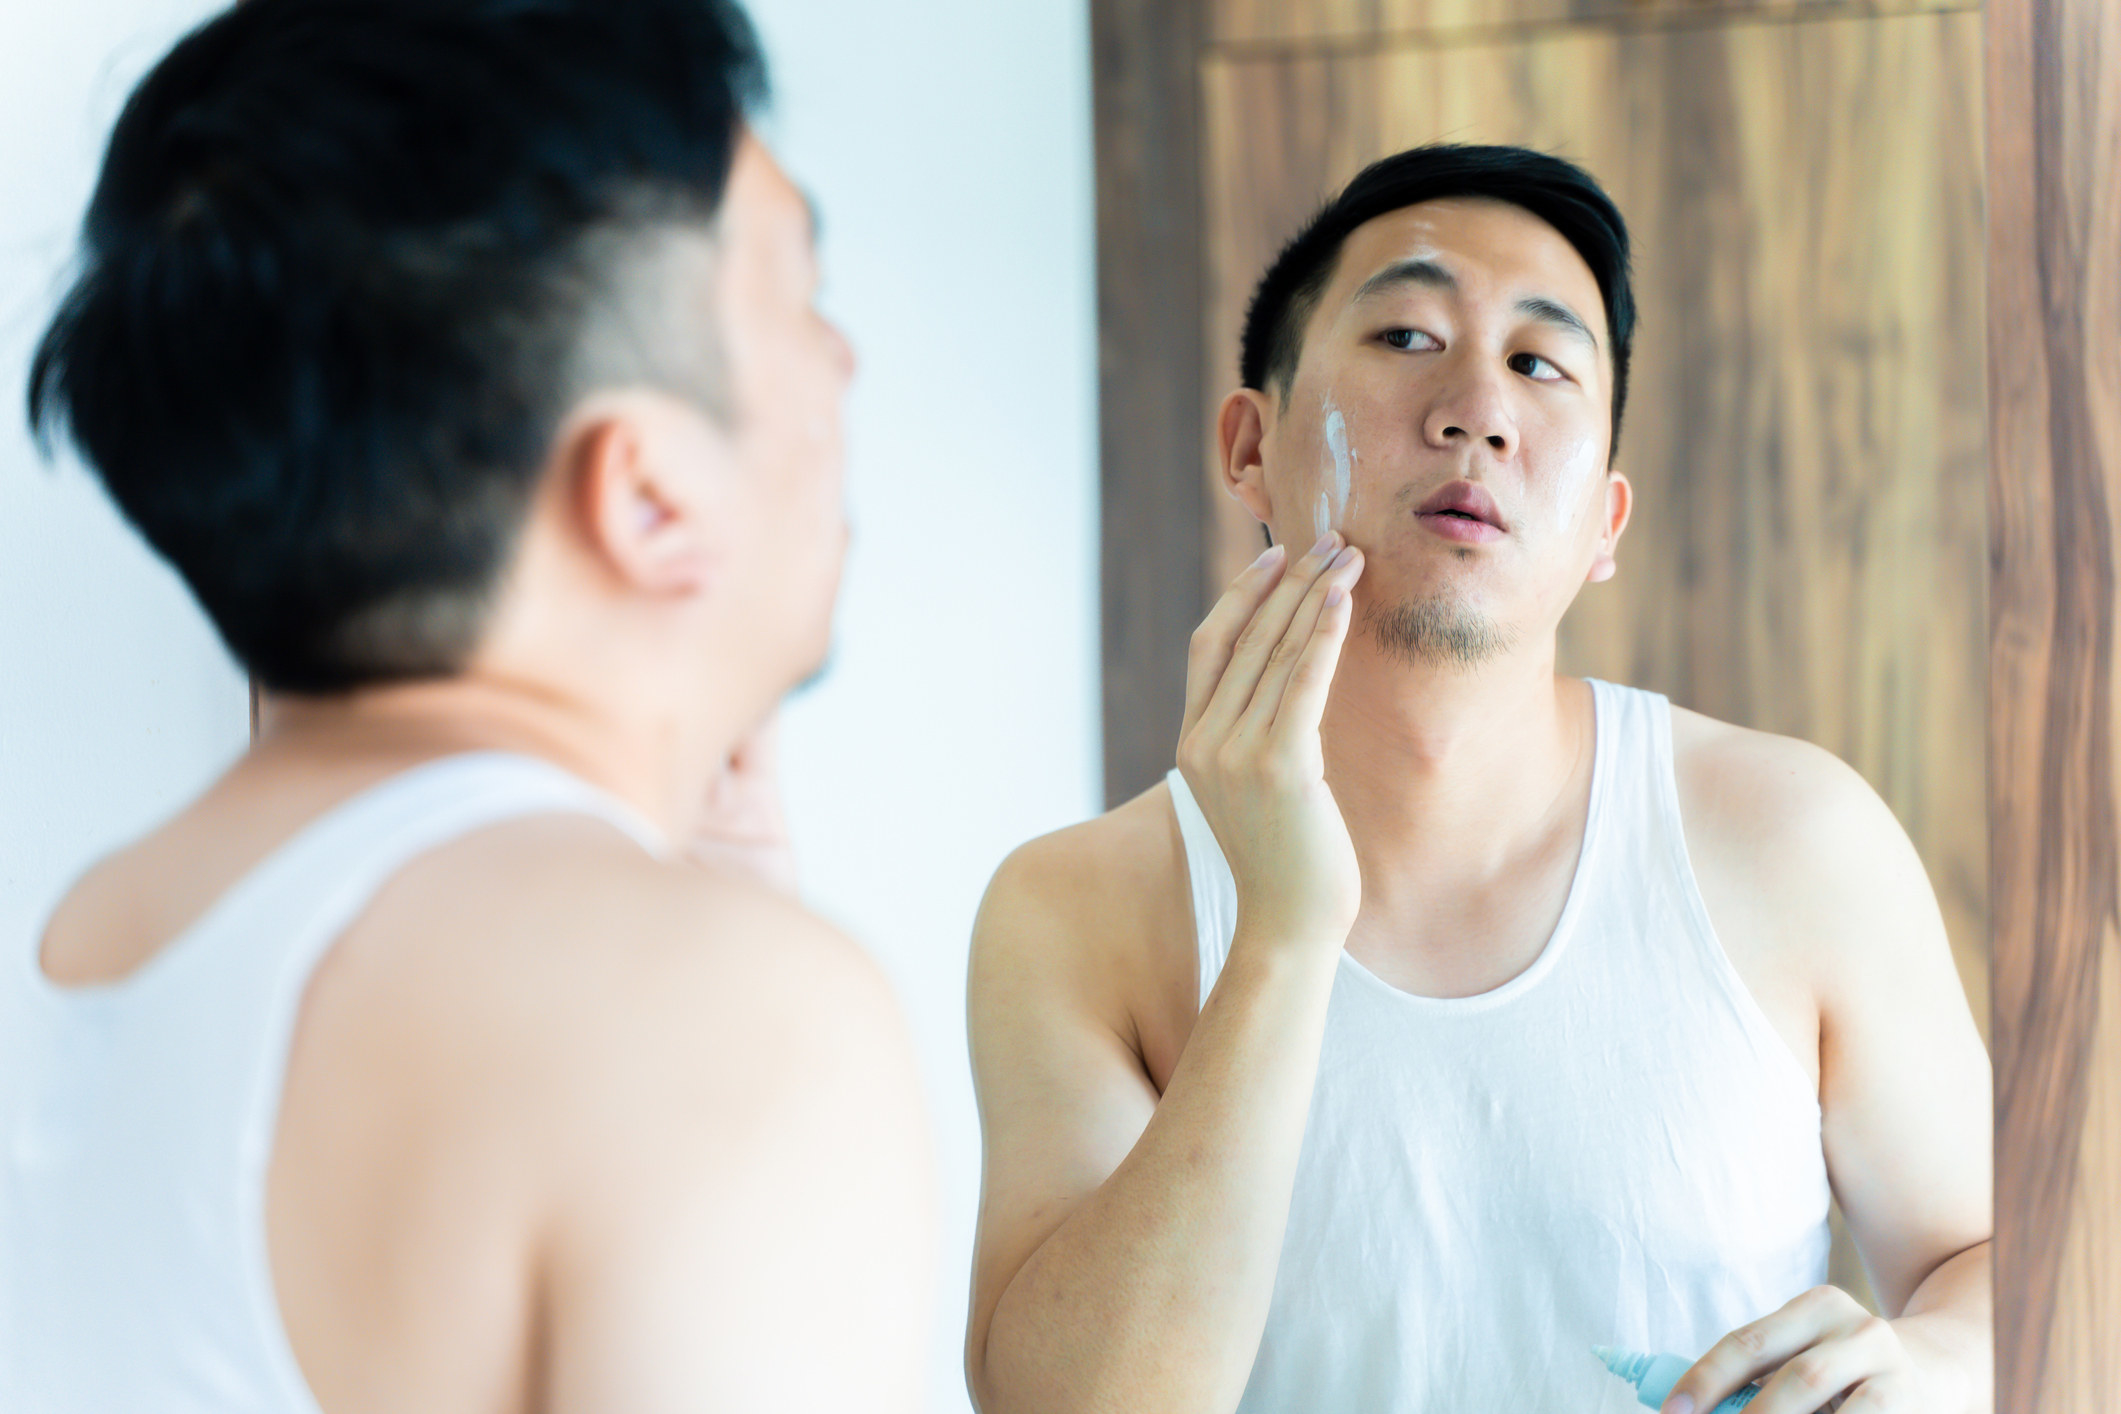 Man moisturizing in mirror